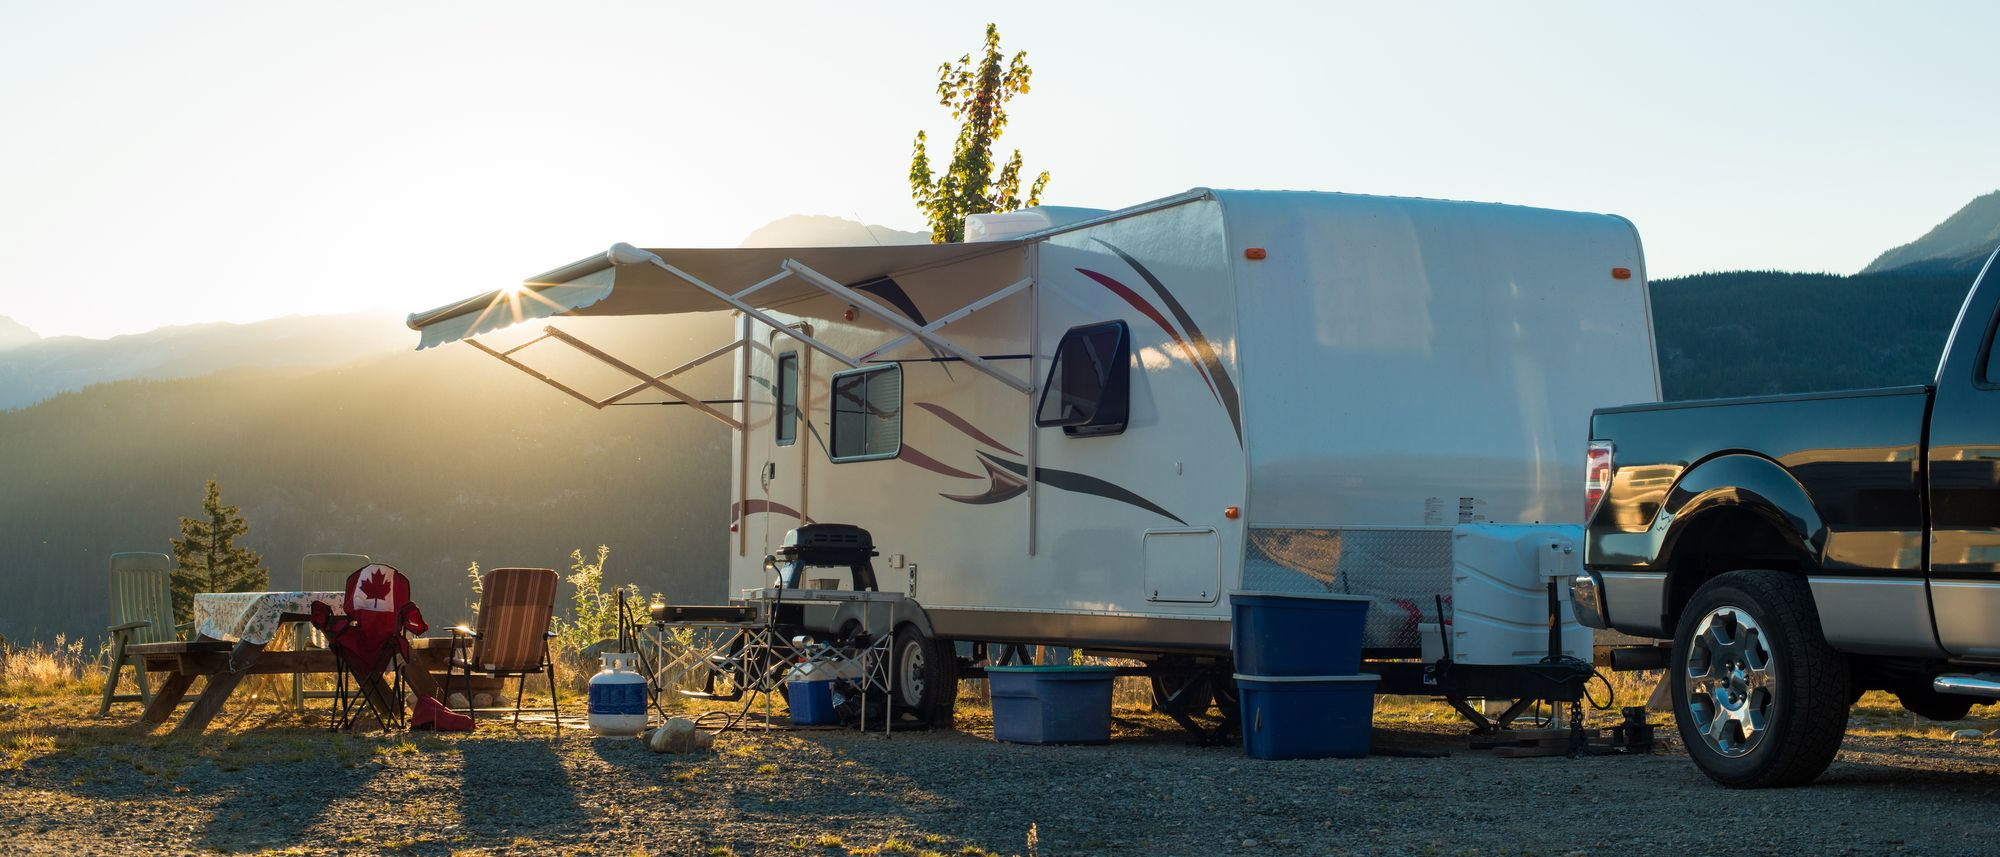 How To Clean and Maintain Your RV Awning